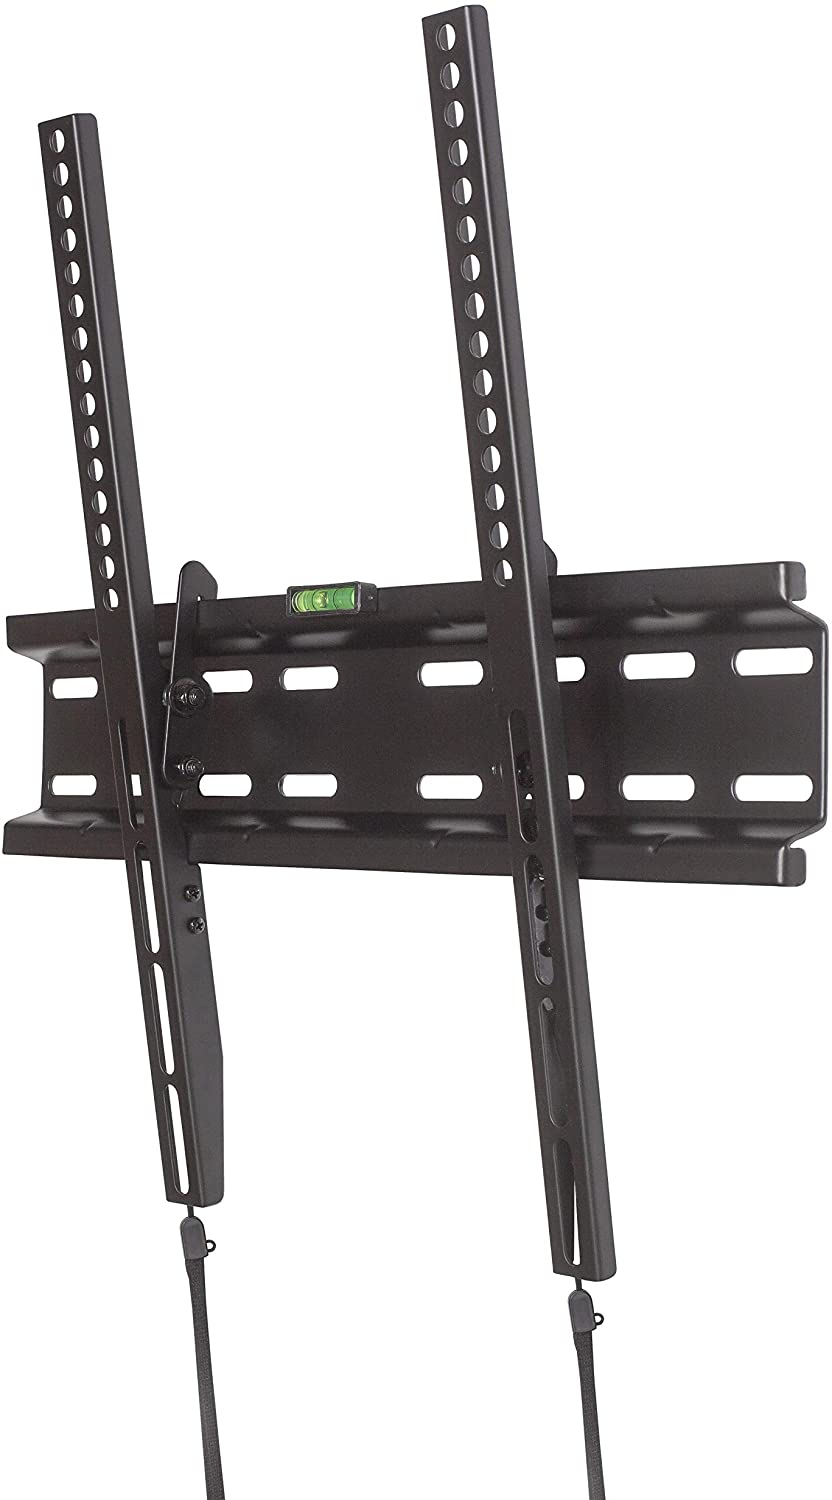 "ATHLETIC Soporte de Pared para TV de 23""- 55"" LED/LCD/Plasma TV Extensible Inclinable - Carga Máx. 35 kg - VESA Máx. 400x400mm"